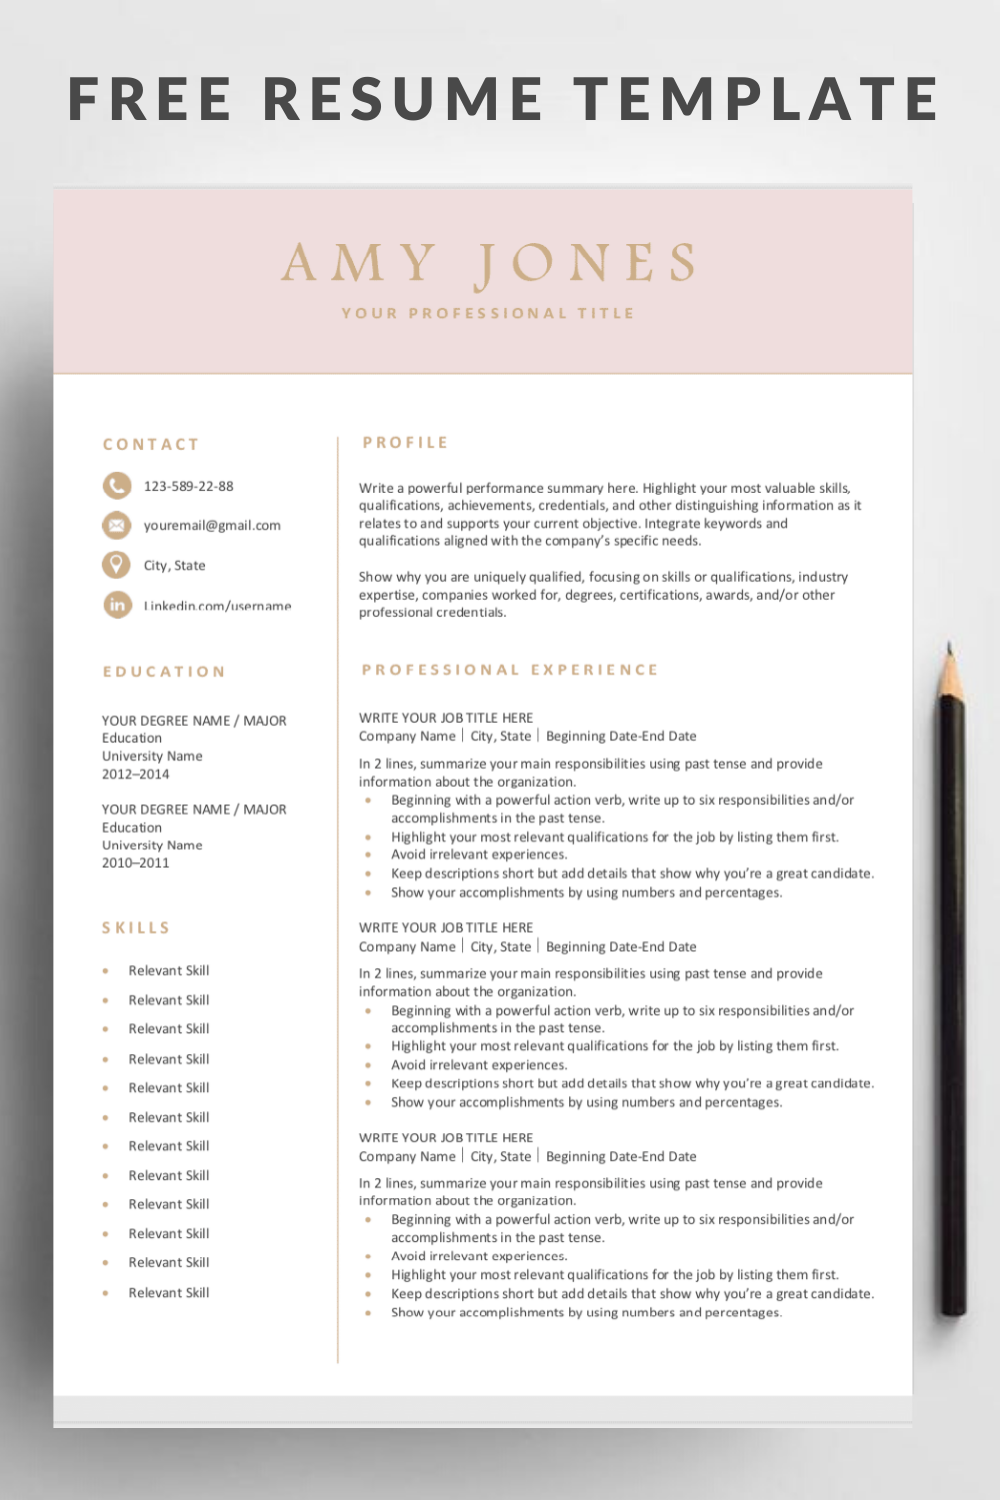 Free Resume Template in 2020 Resume template free, Free